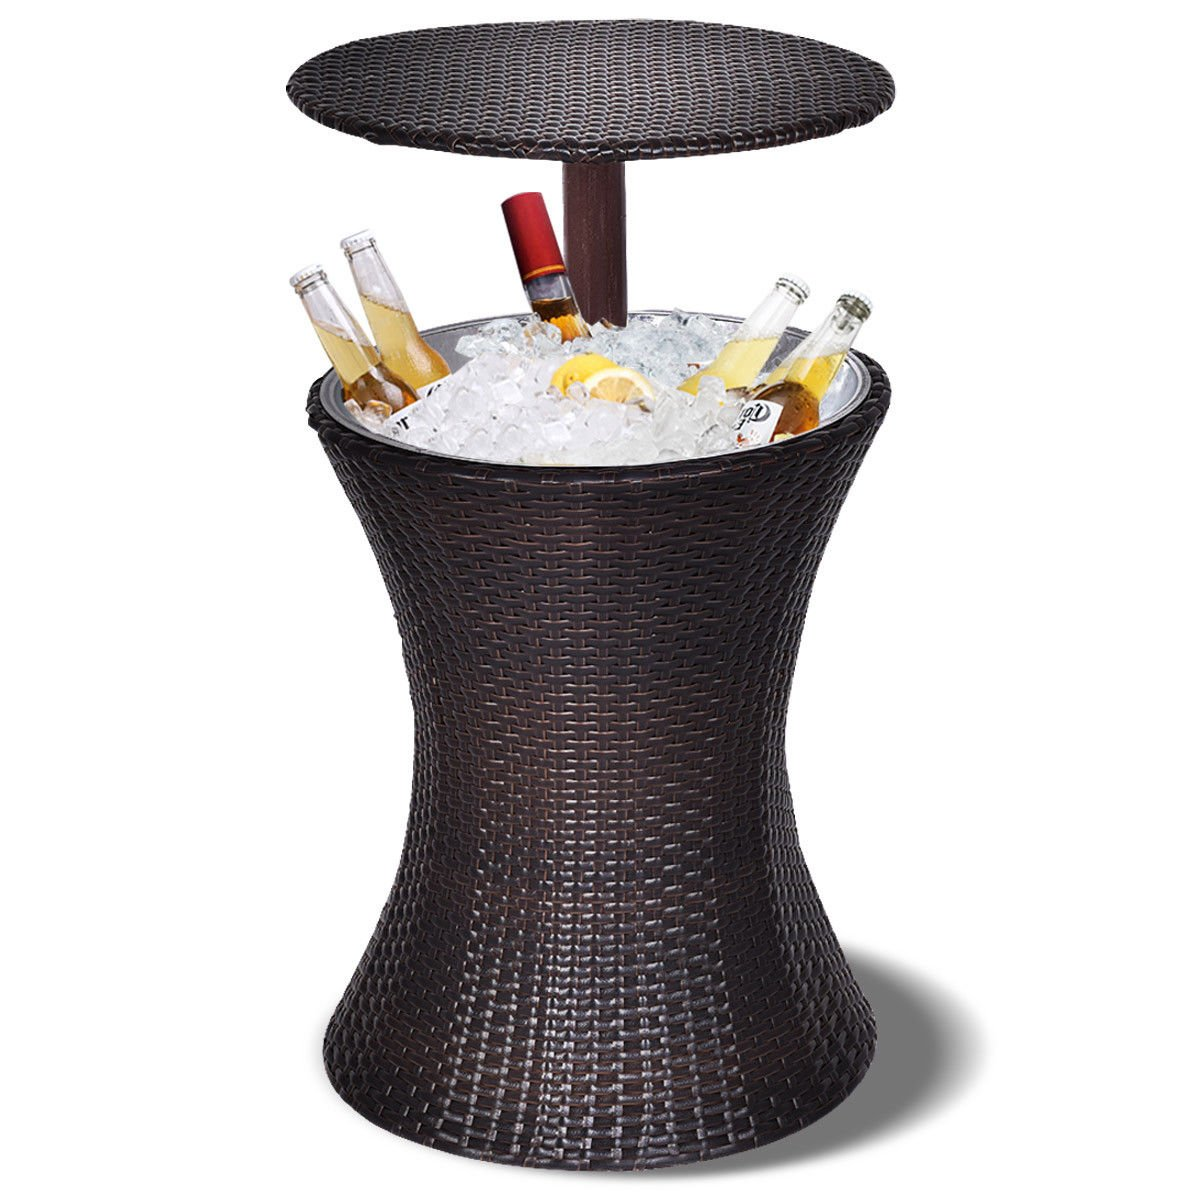 GJH One Table Party Rattan Ice Cooler Cool Bar Adjustable Outdoor Patio Deck Pool